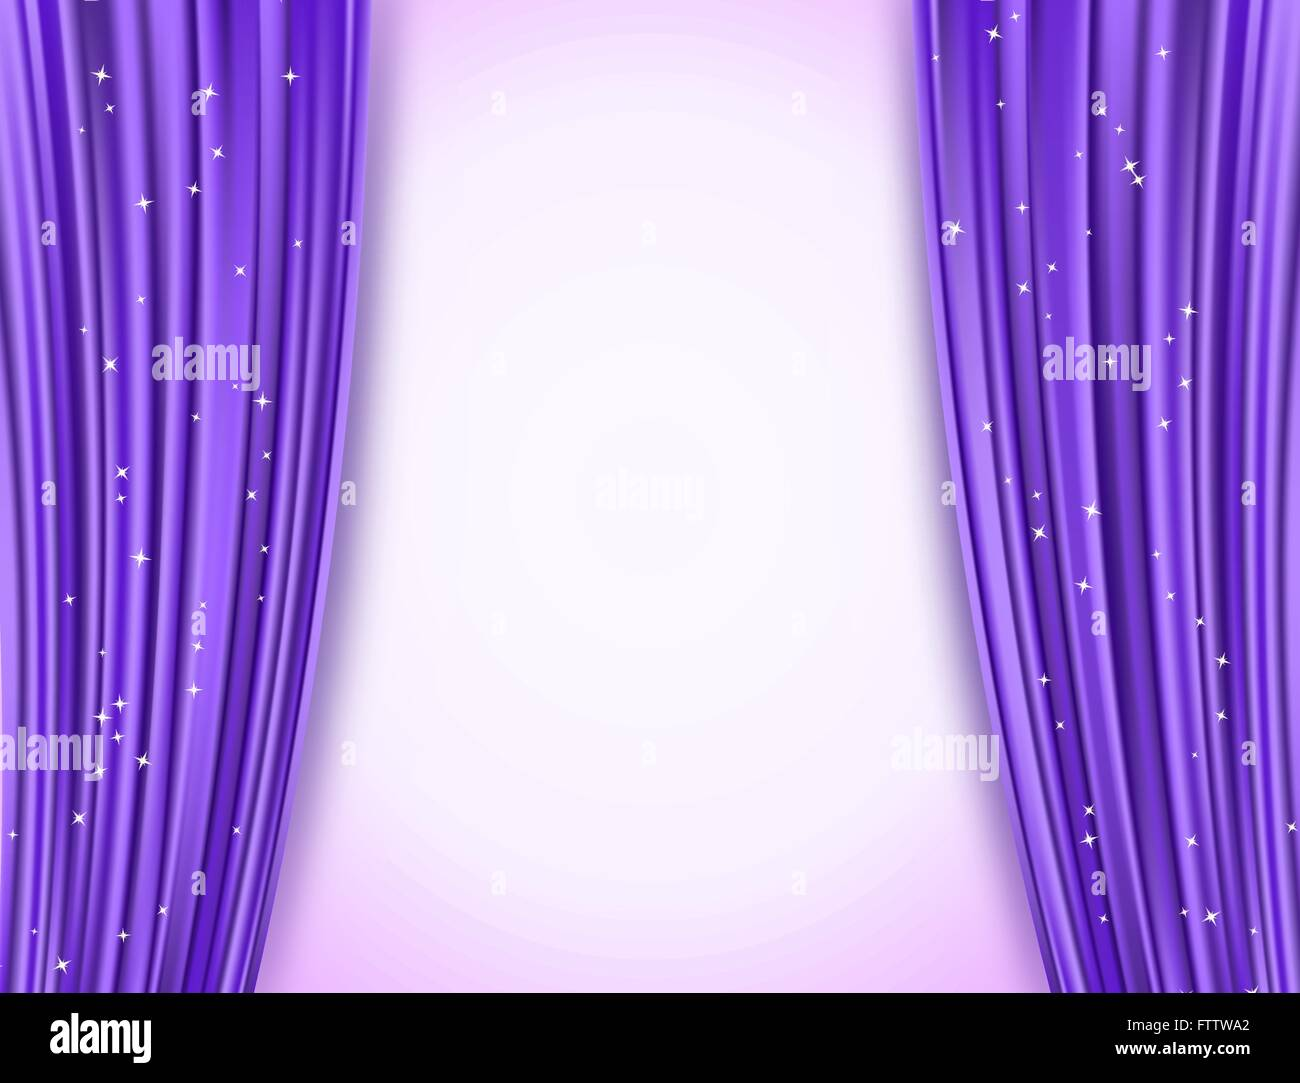 opera violet horizontal drapes glittering stars curtains photo illus background stock and vector abstract glitter theater with